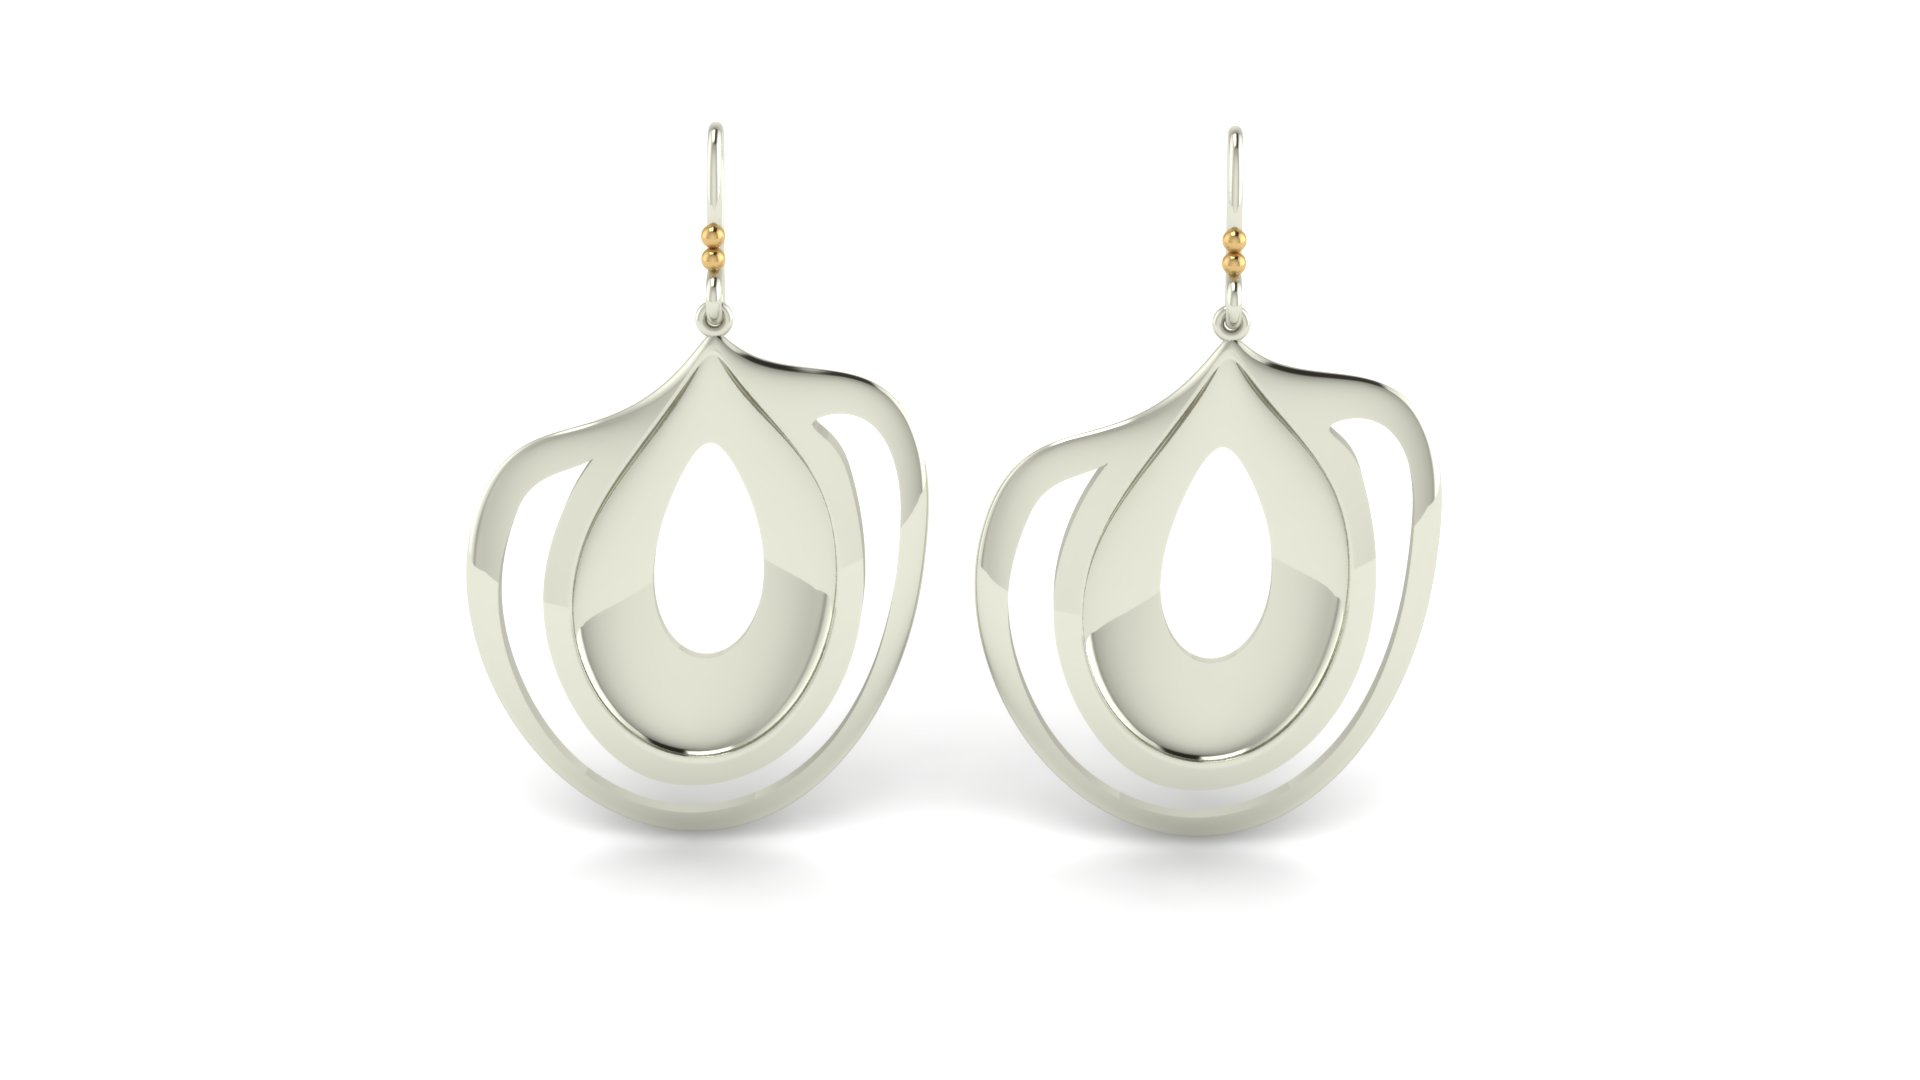 ARTSY OBLONG OVALS EARRINGS